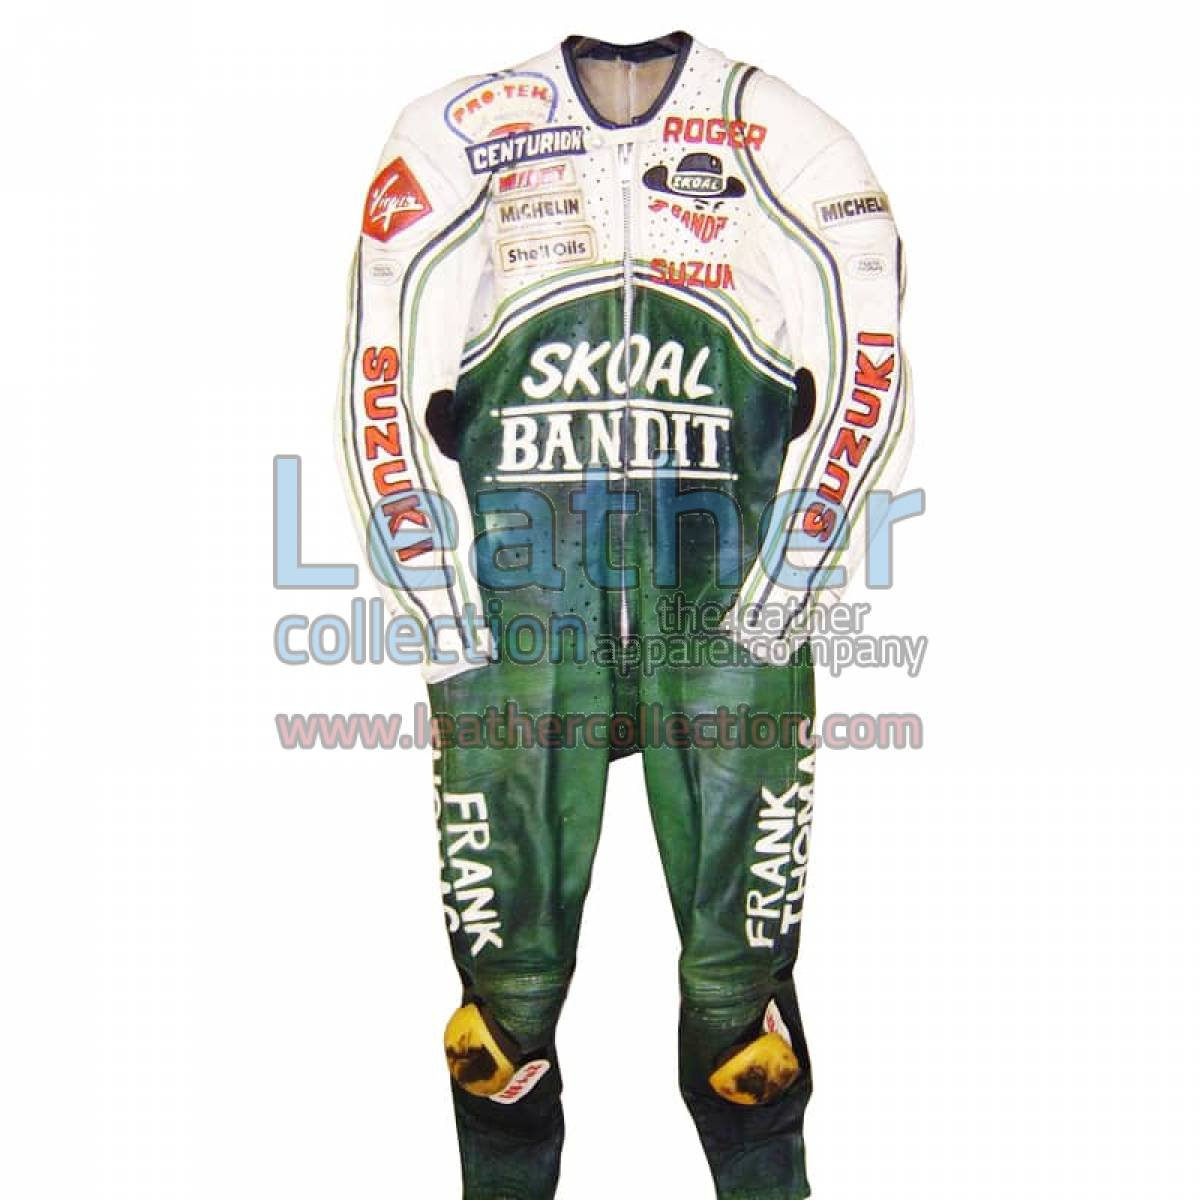 Roger Marshall Suzuki GP 1987 Leather Suit